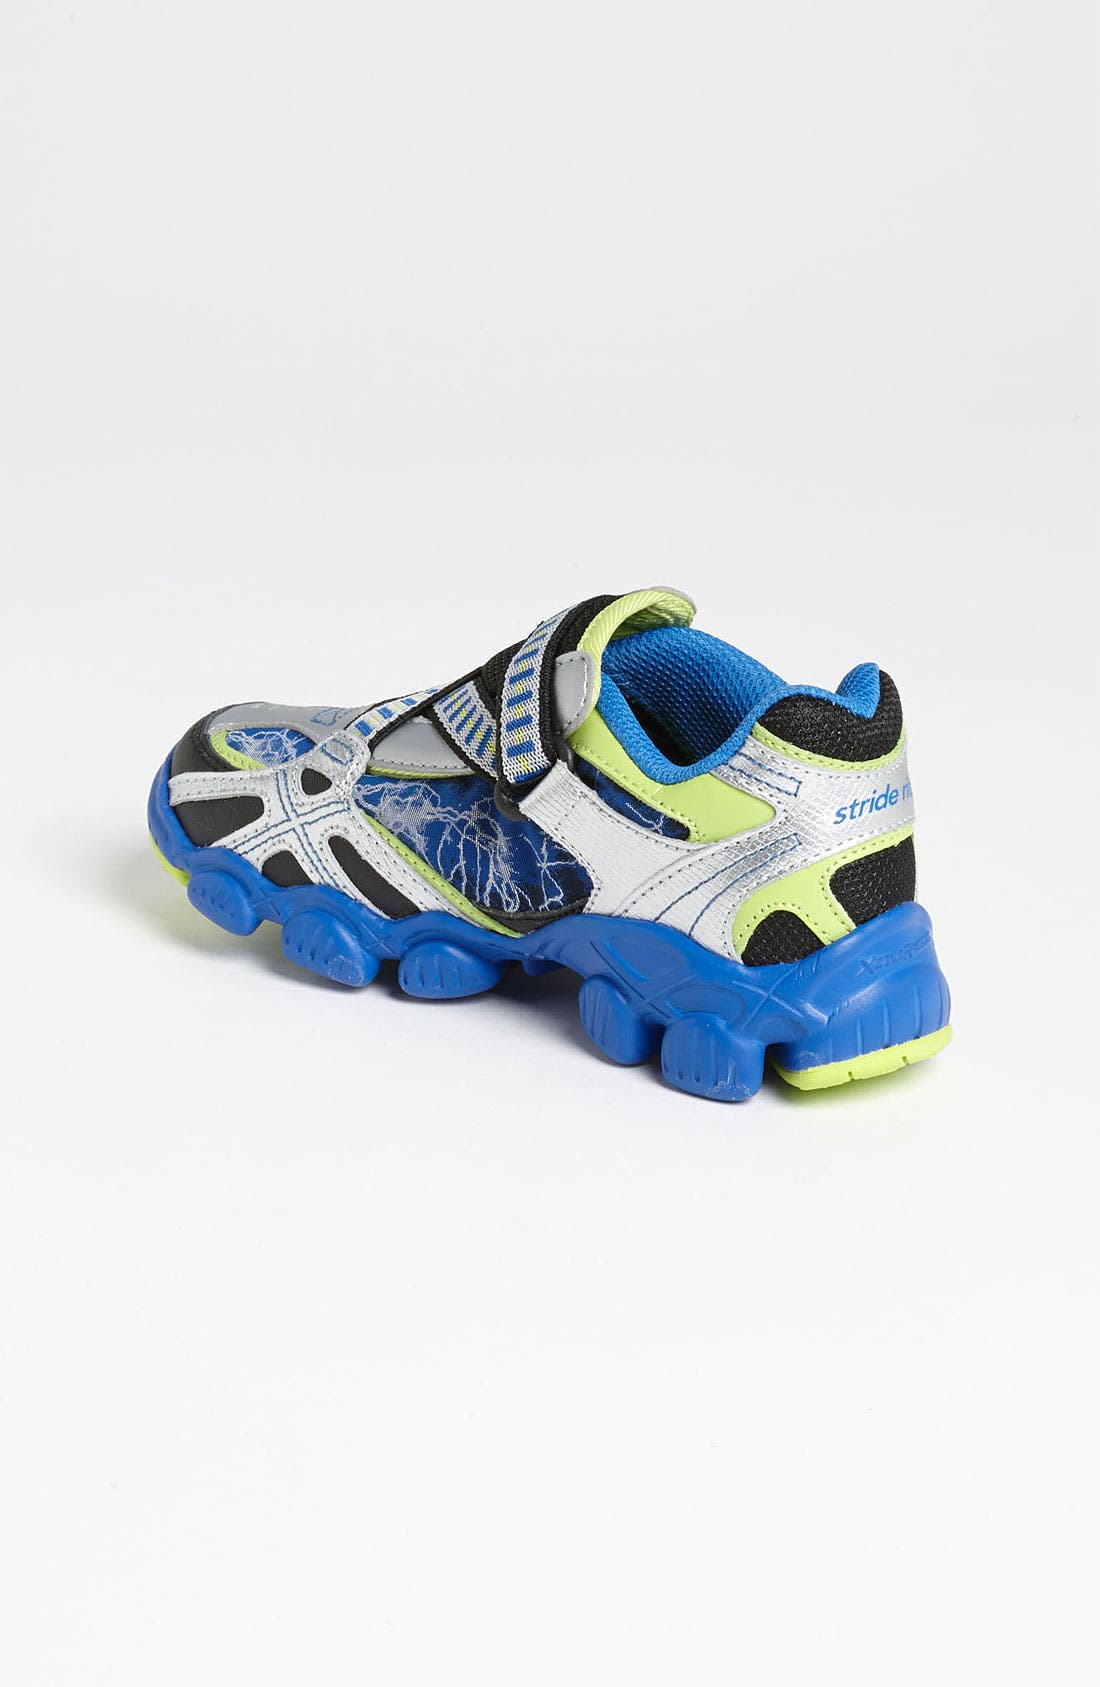 Alternate Image 2  - Stride Rite 'X-celeracer' Sneaker (Toddler & Little Kid)